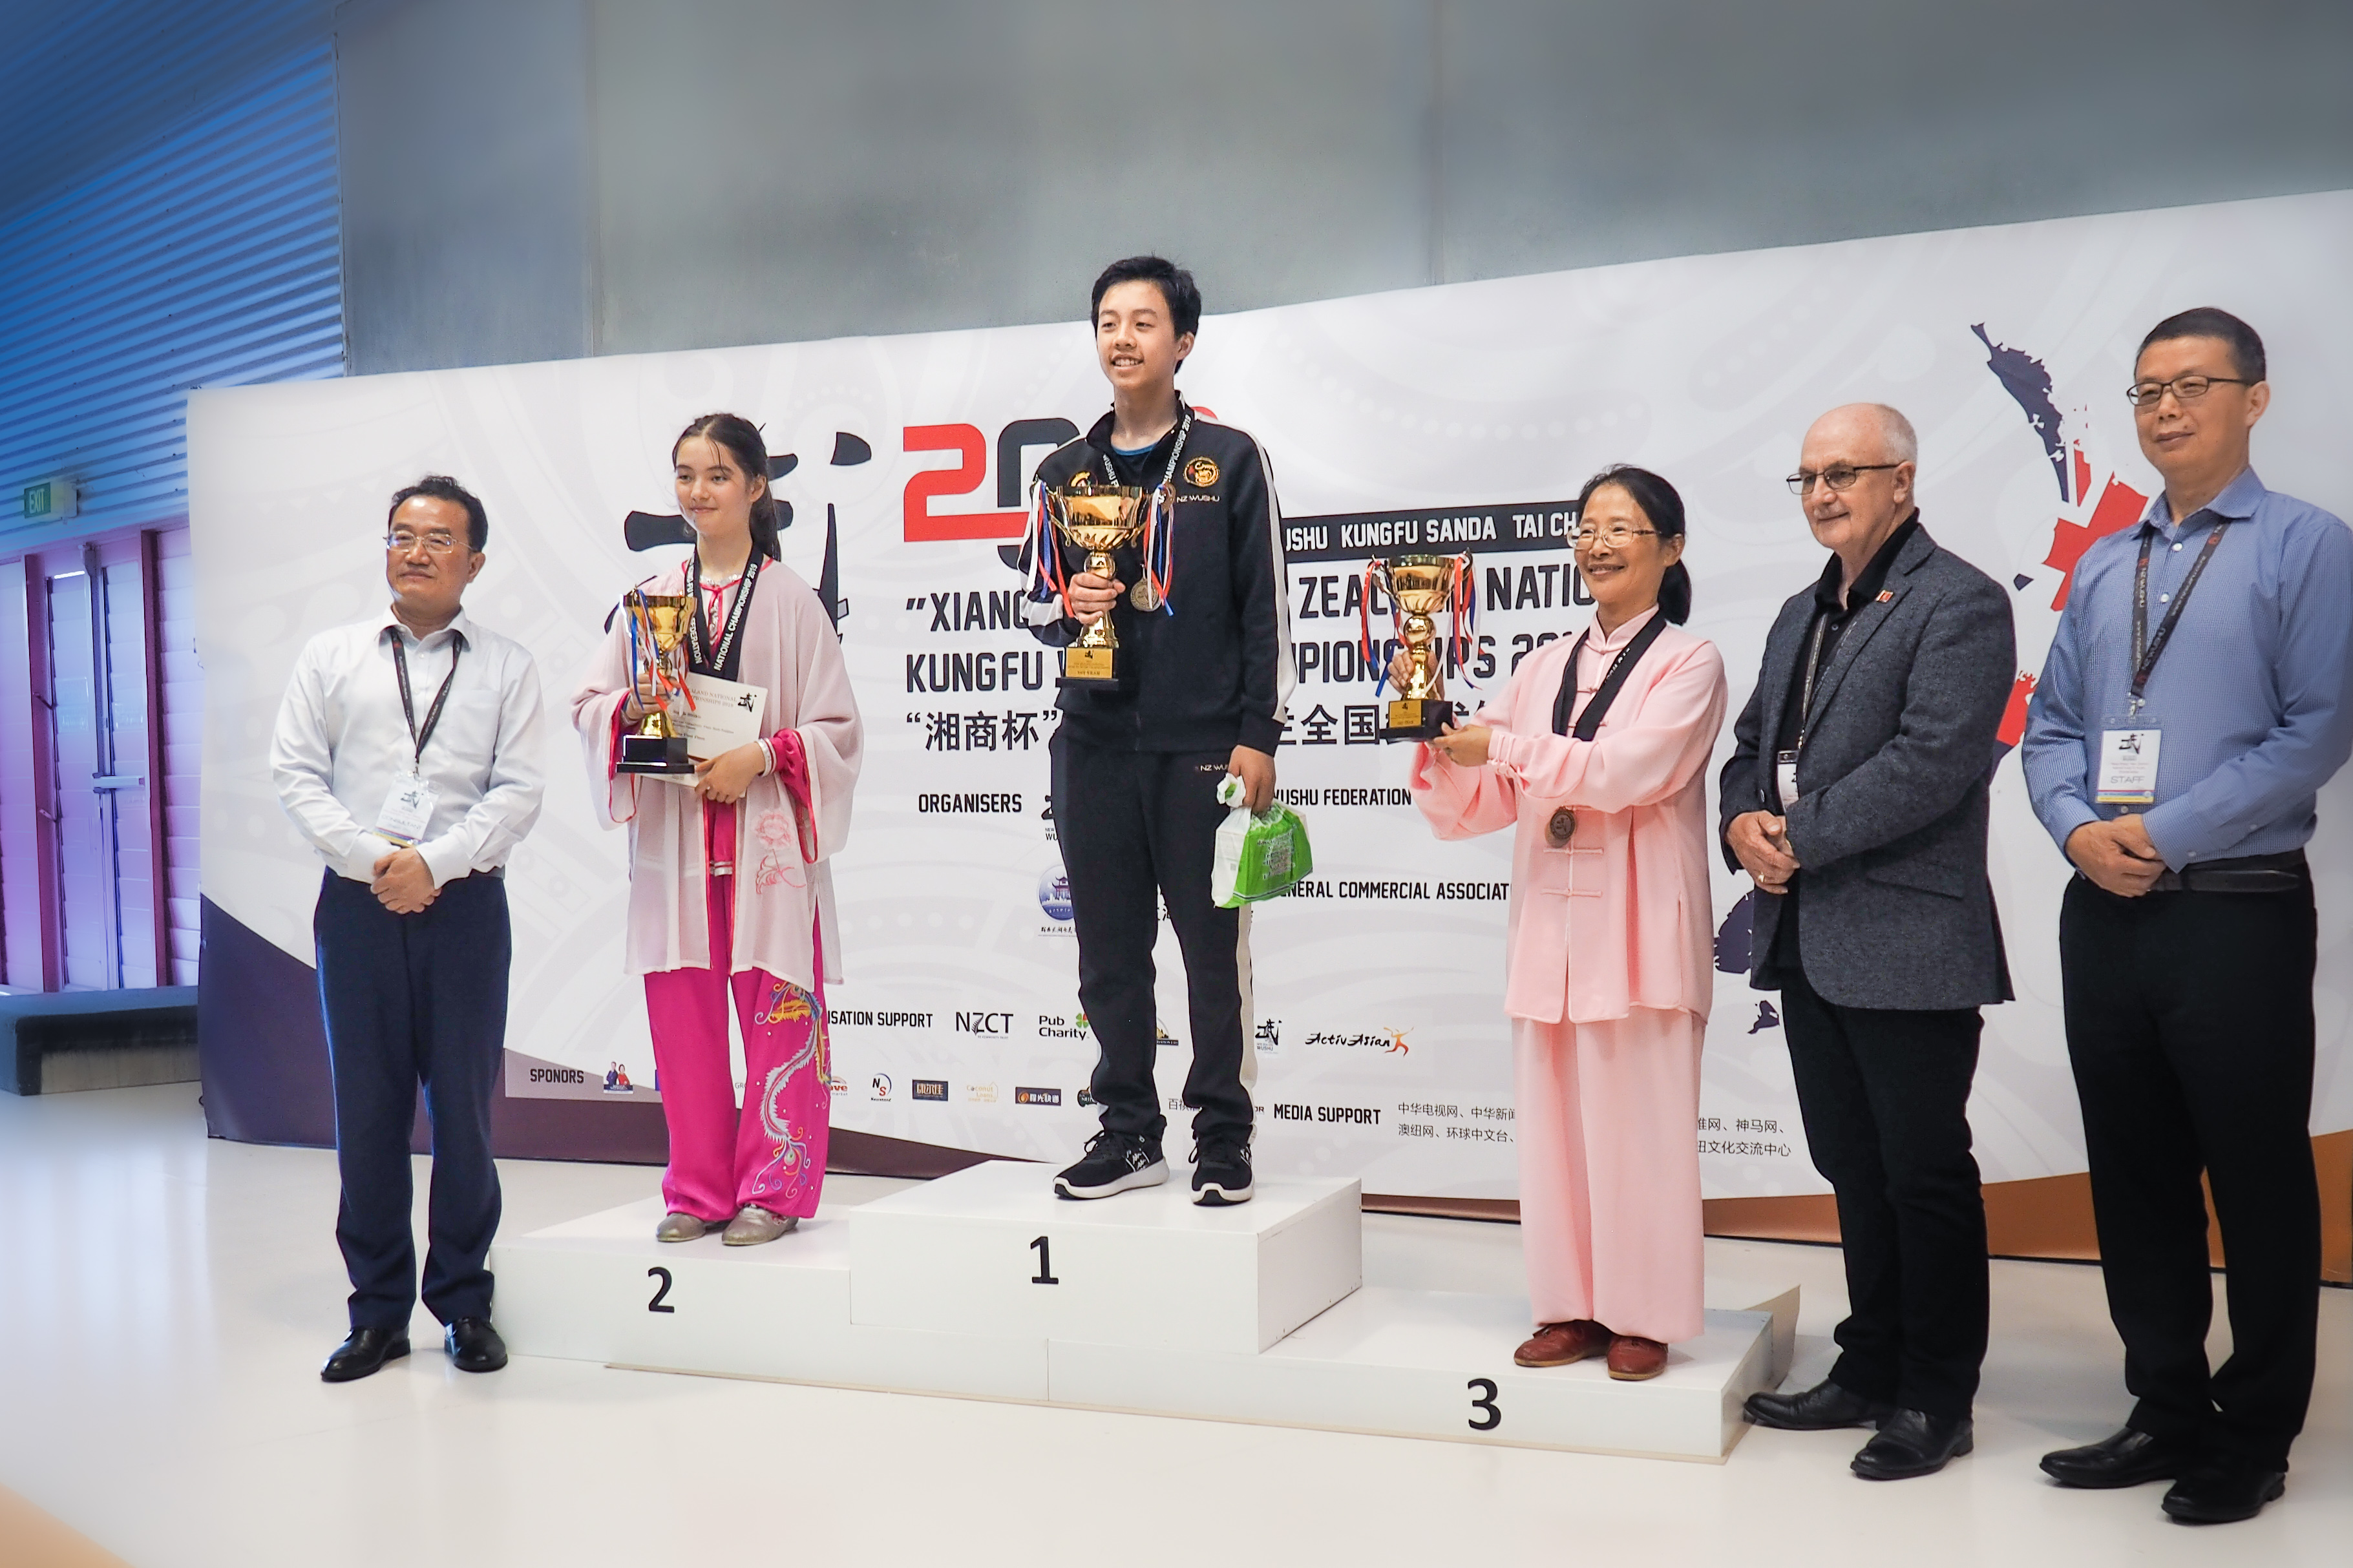 Winners of the Xiang Shang Cup 2019